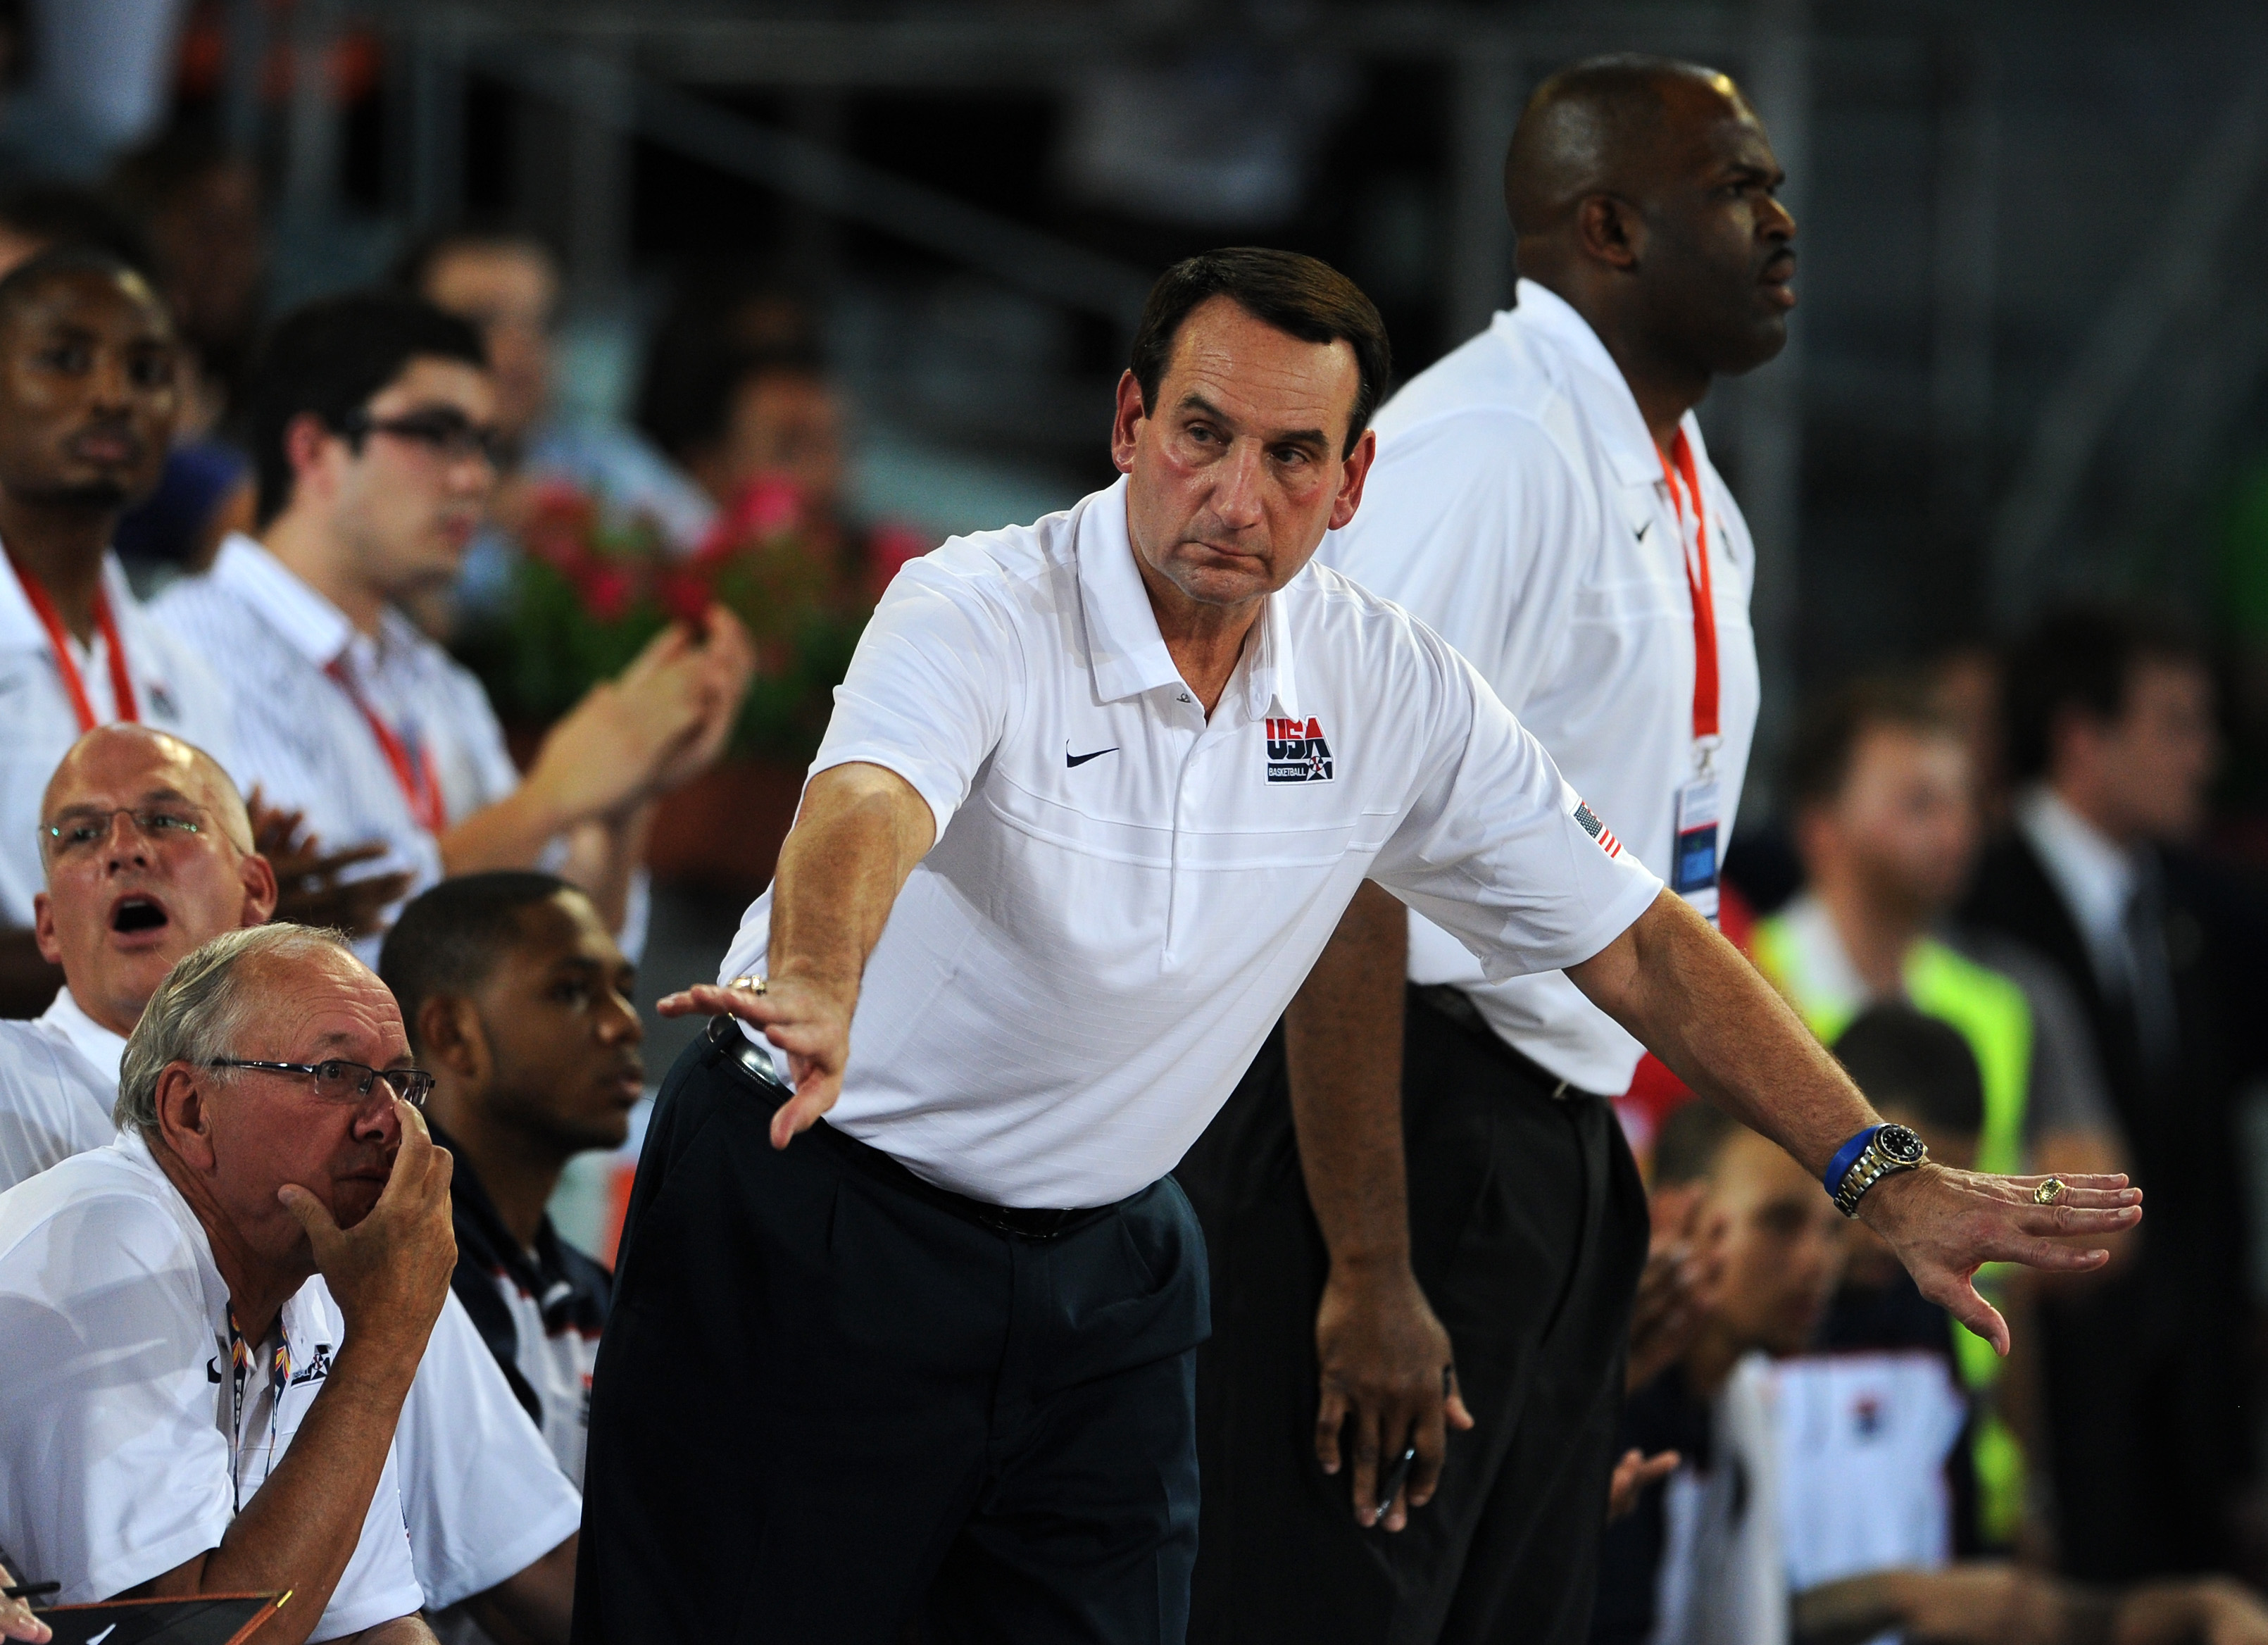 MADRID, SPAIN - AUGUST 22:  Coach Mike Krzyzewsky of the USA gestures during a friendly basketball game between Spain and the USA at La Caja Magica on August 22, 2010 in Madrid, Spain.  (Photo by Jasper Juinen/Getty Images)